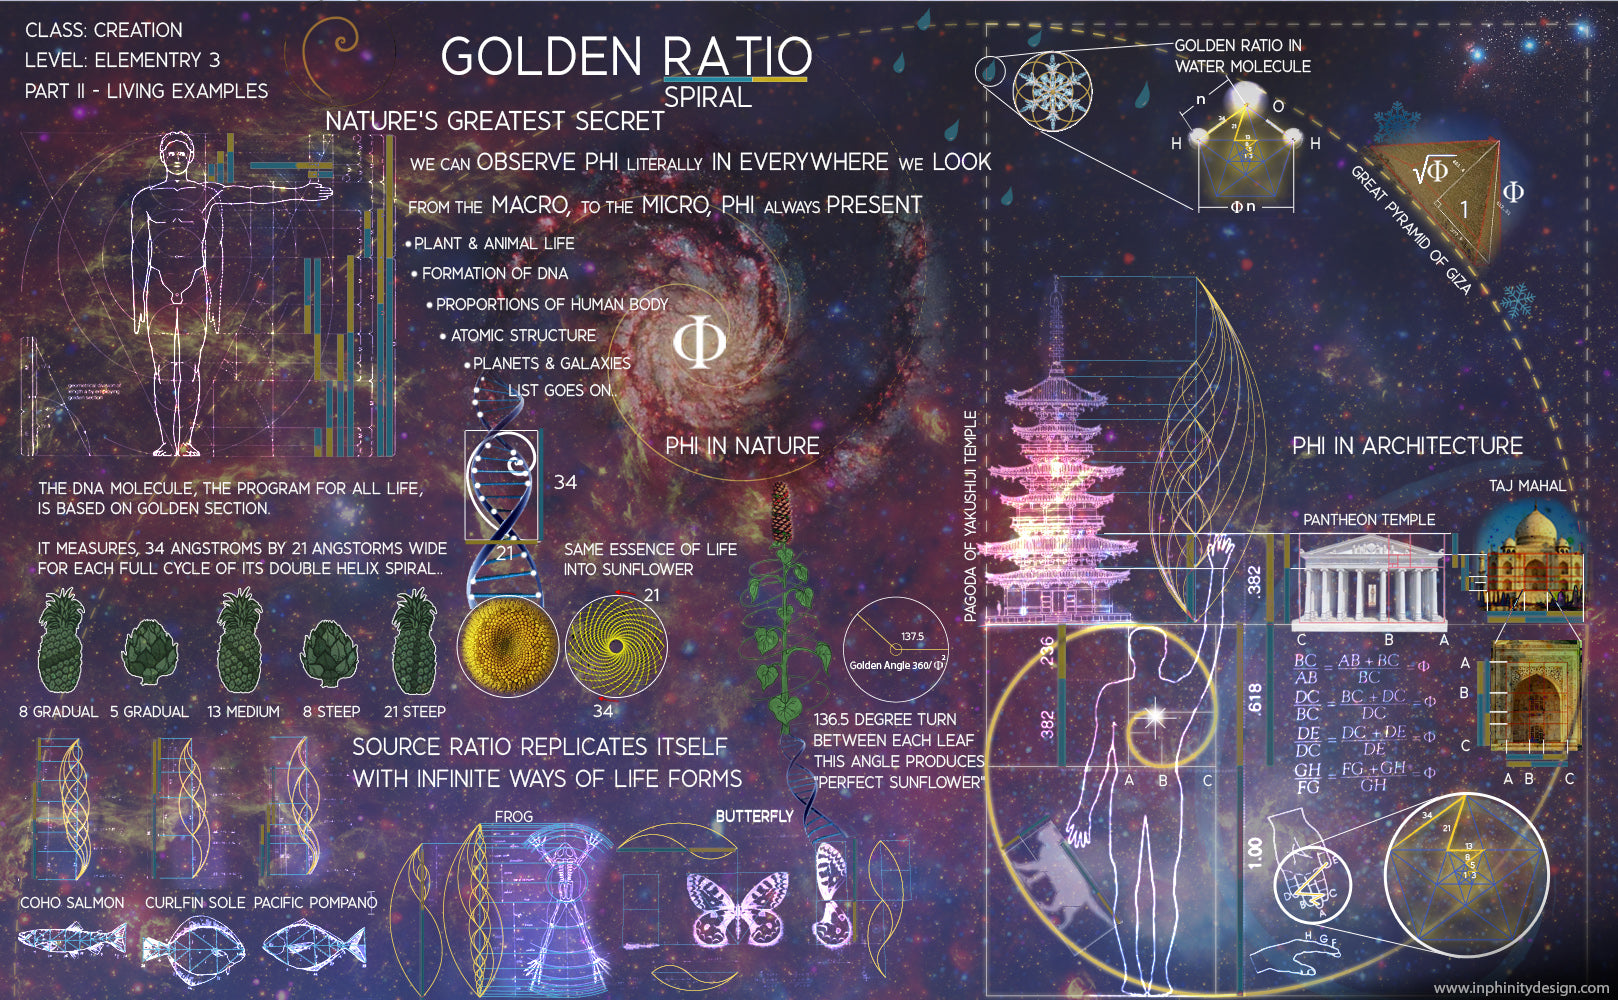 language of creation Torus Golden ratio fibonacci sacred geometry sunflower ying yang harmony balance